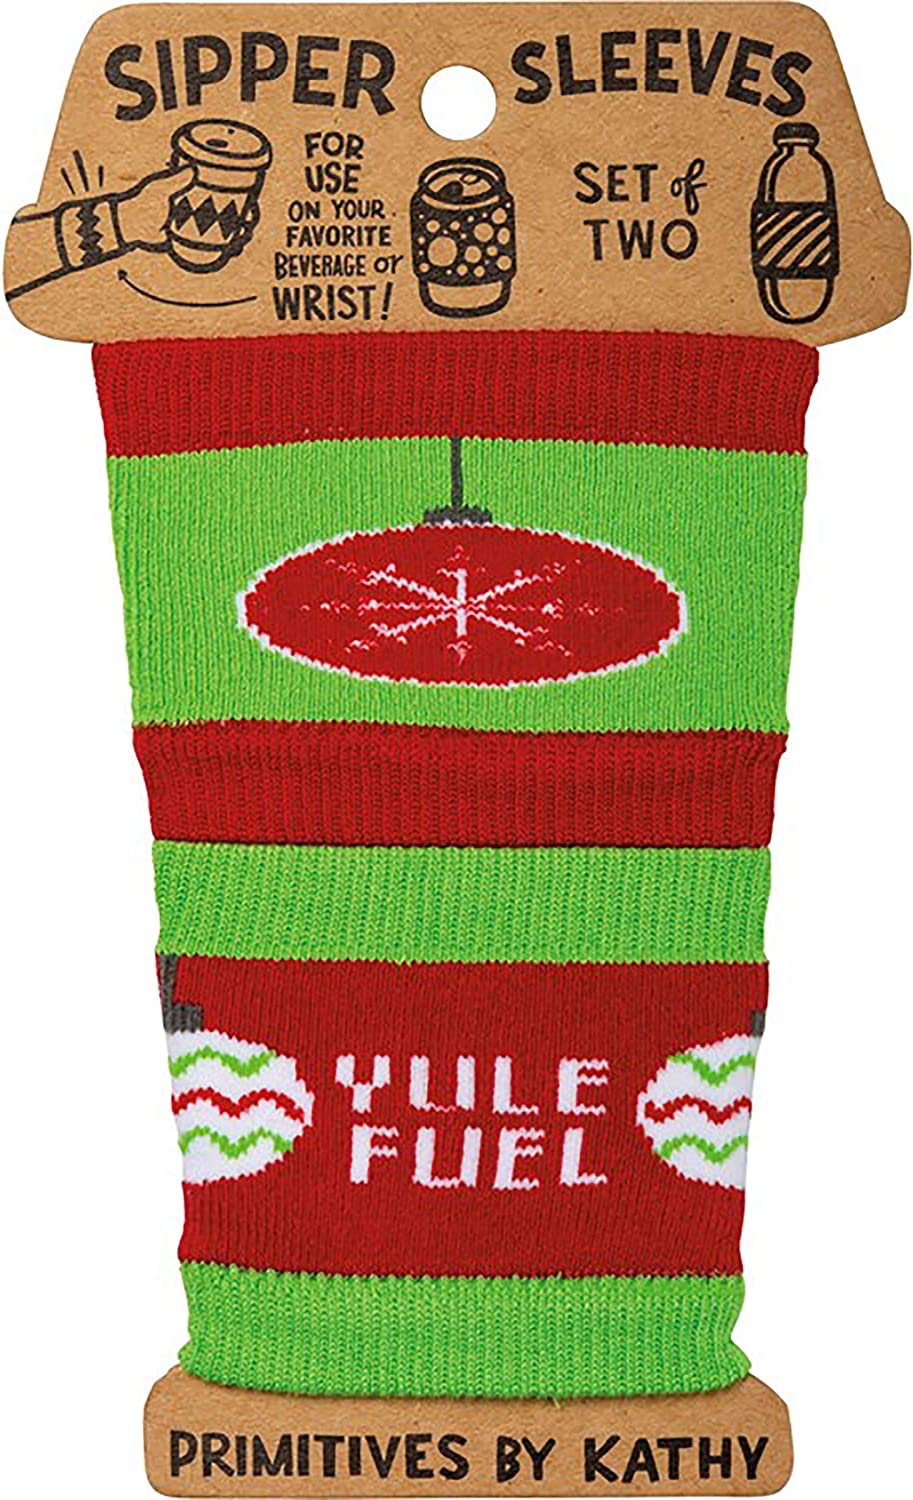 Primitives by Kathy Yule Fuel Slipper Drink Sleeves, Set of 2 Christmas Reusable Knit Sleeves for Coffee Tea Hot Cold Drinks Beverages & Water Bottles